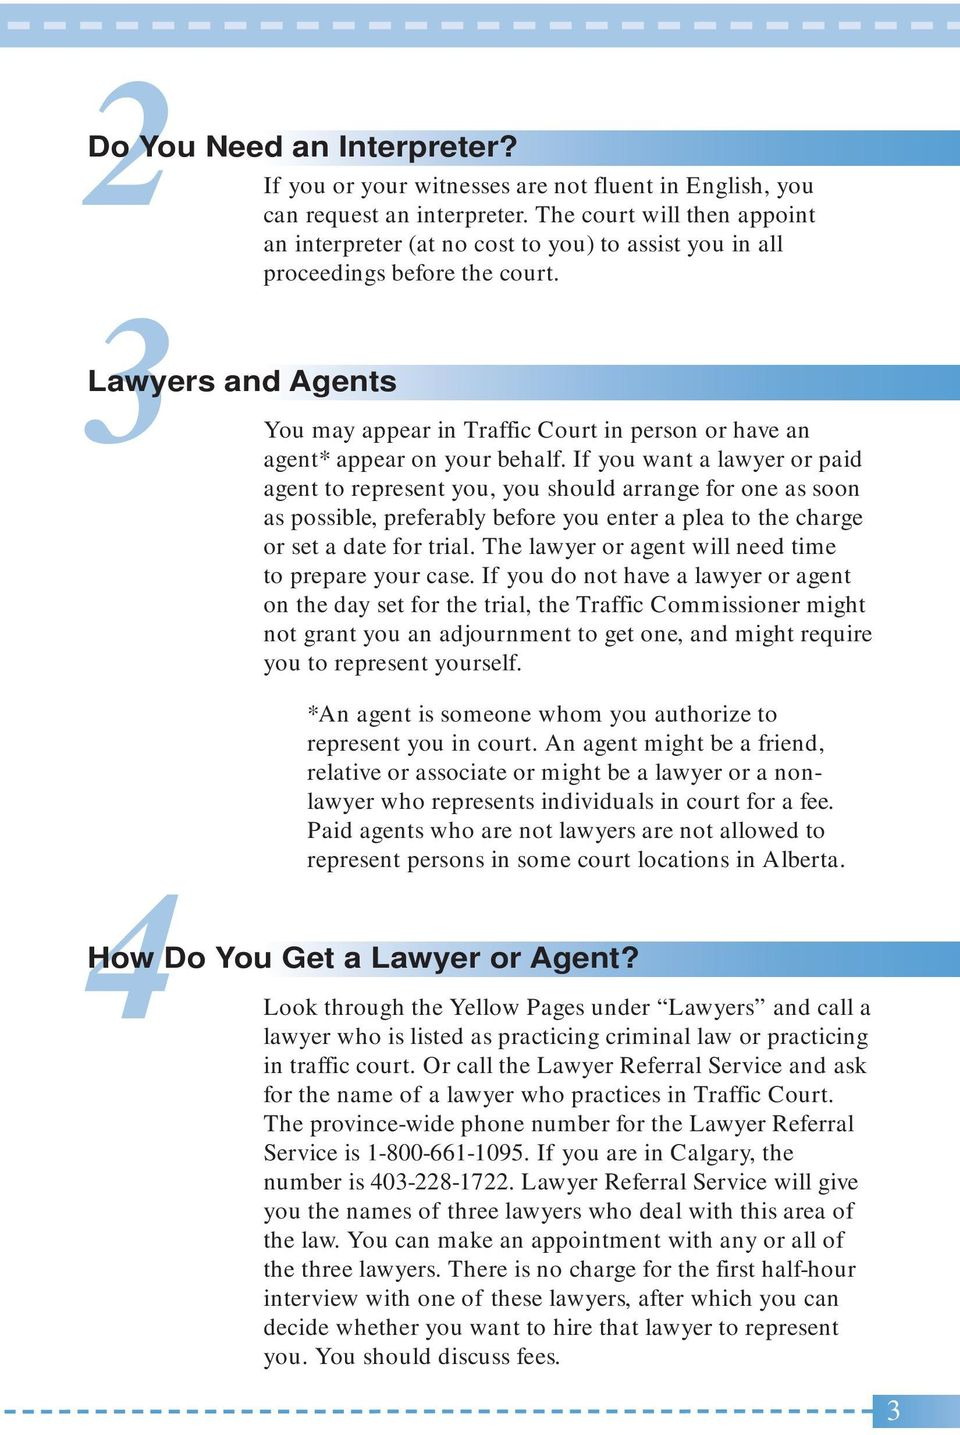 3Lawyers and Agents You may appear in Traffic Court in person or have an agent* appear on your behalf.